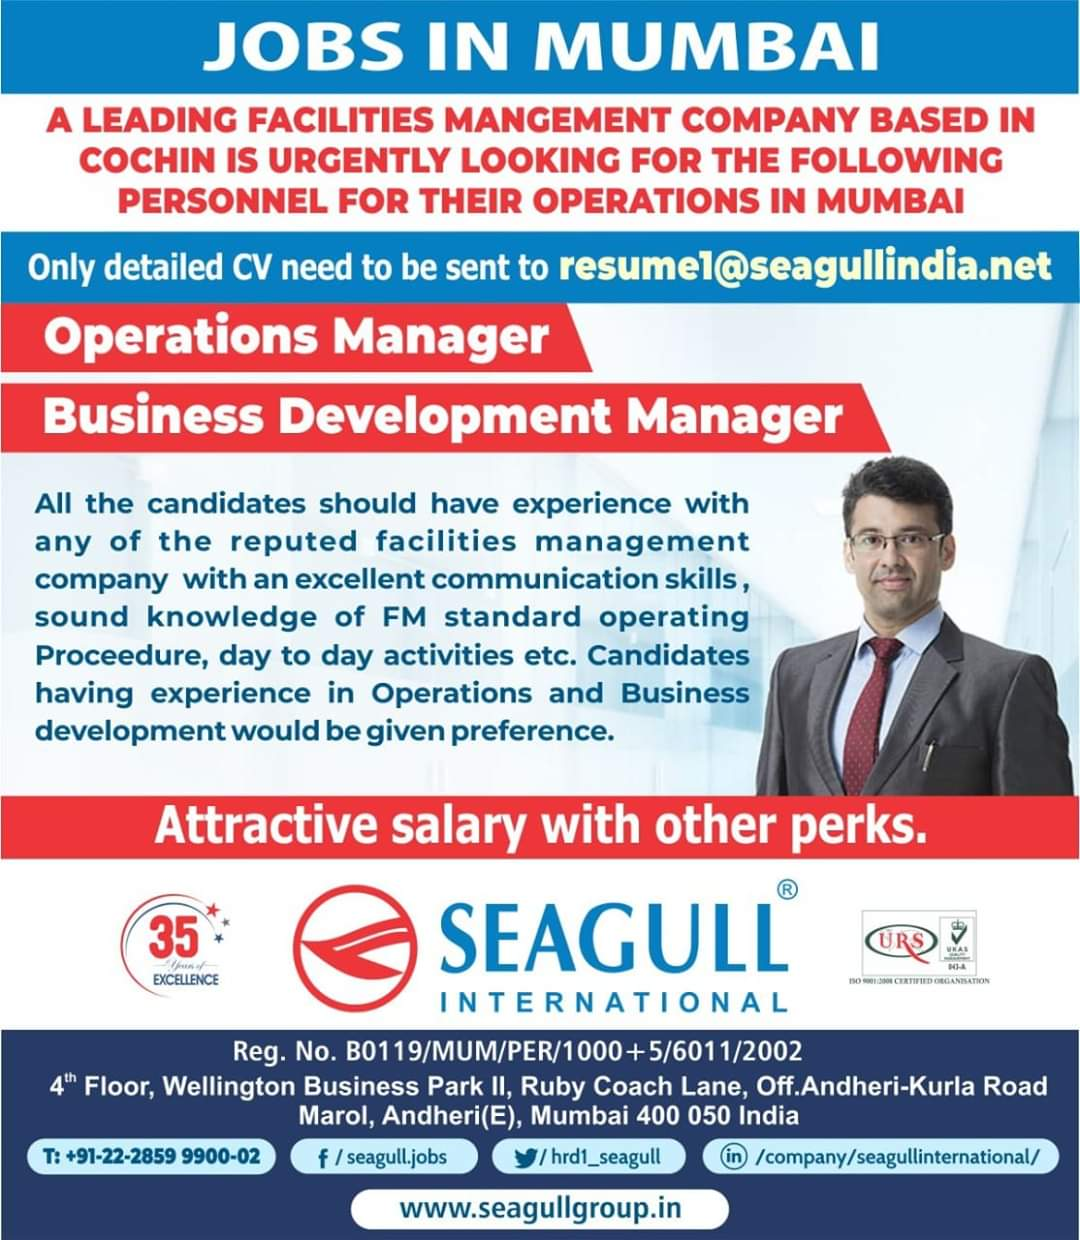 REQUIREMENT FOR A LEADING FACILITIES MANAGEMENT COMPANY